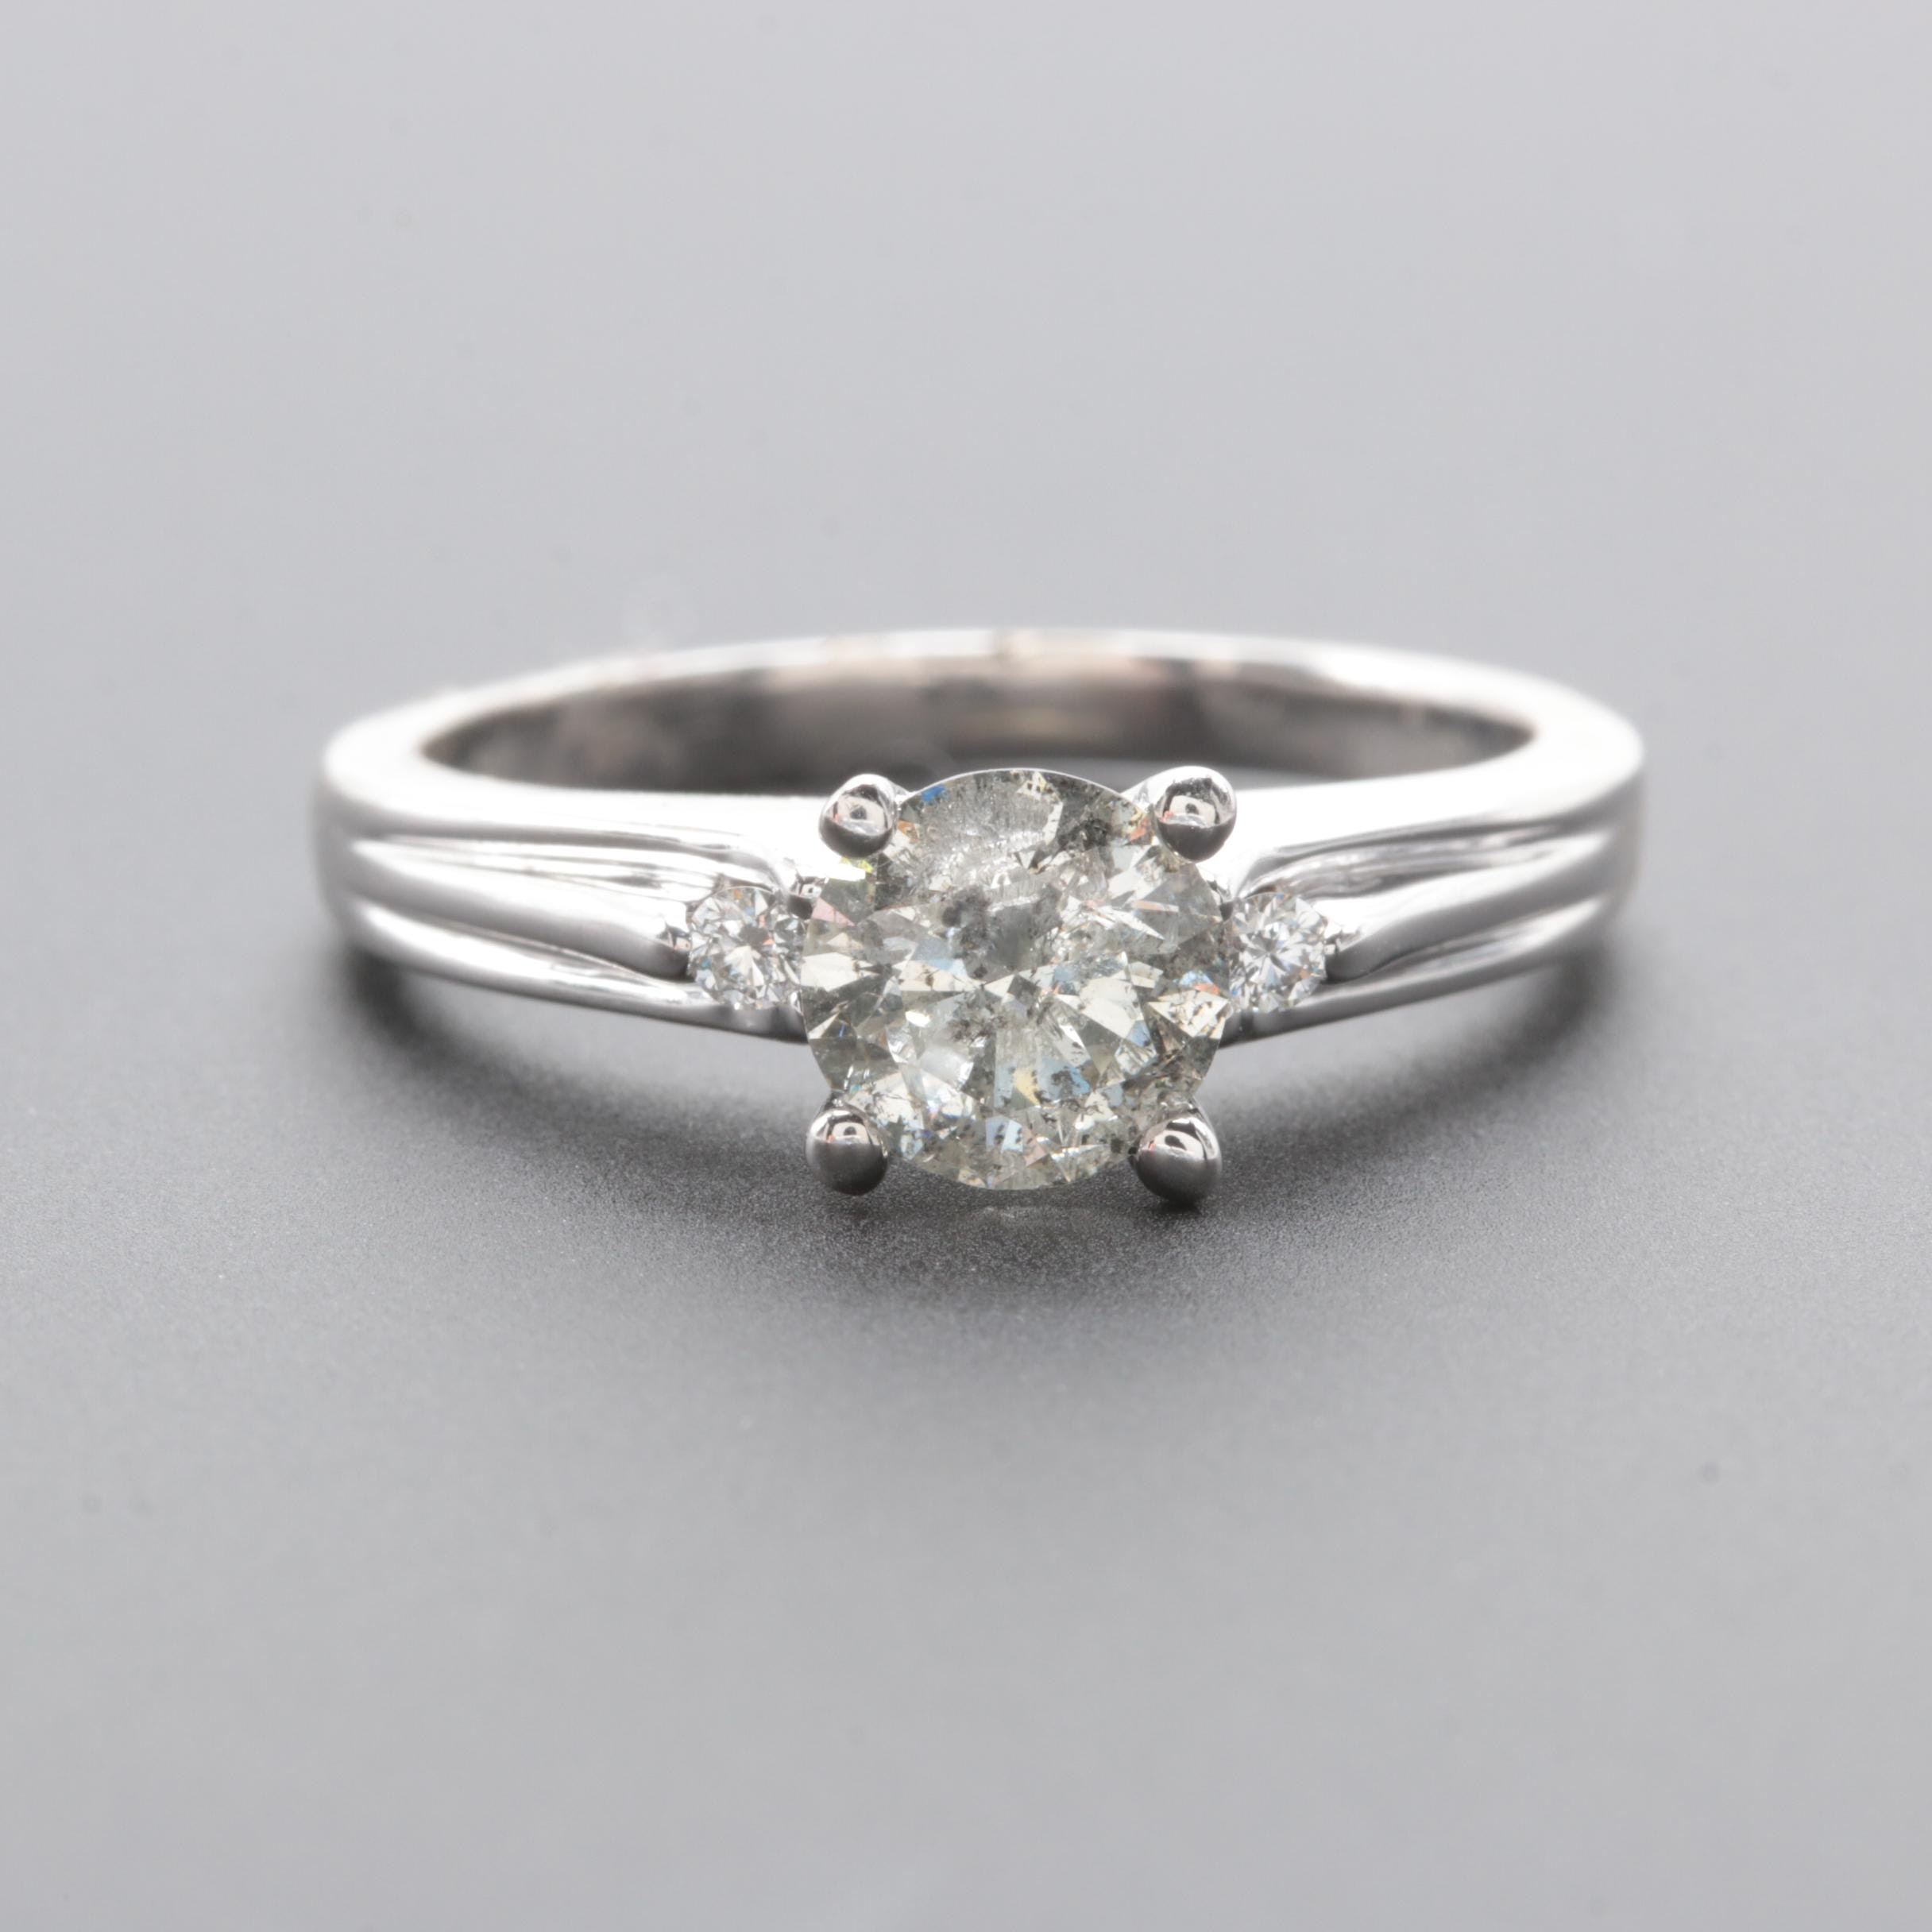 14K White Gold 1.13 CTW Diamond Ring